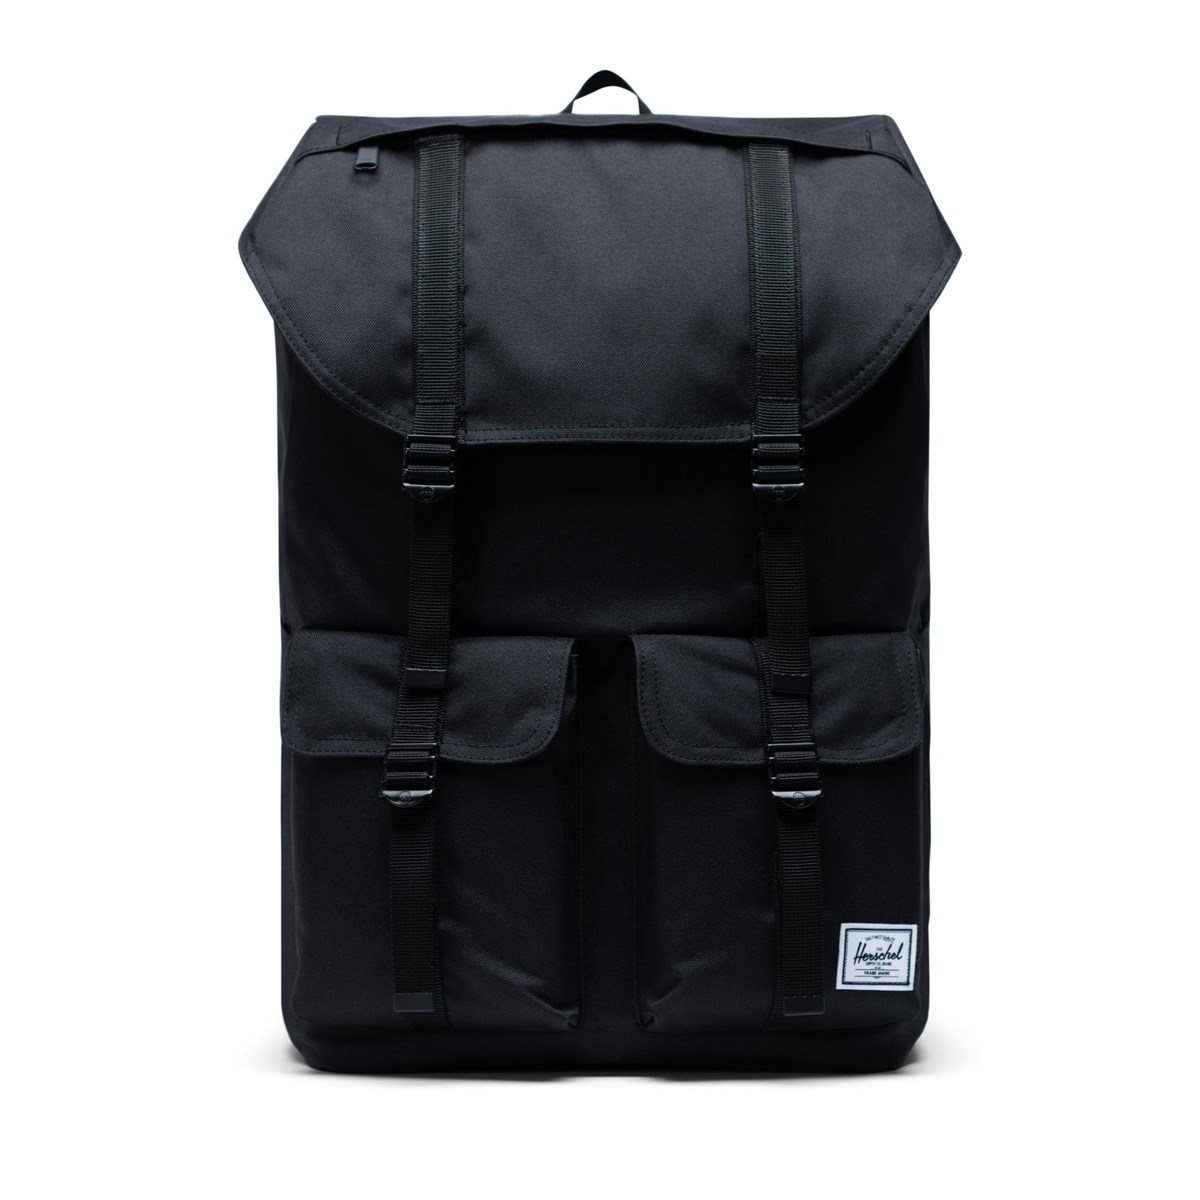 Buckingham Backpack in All Black